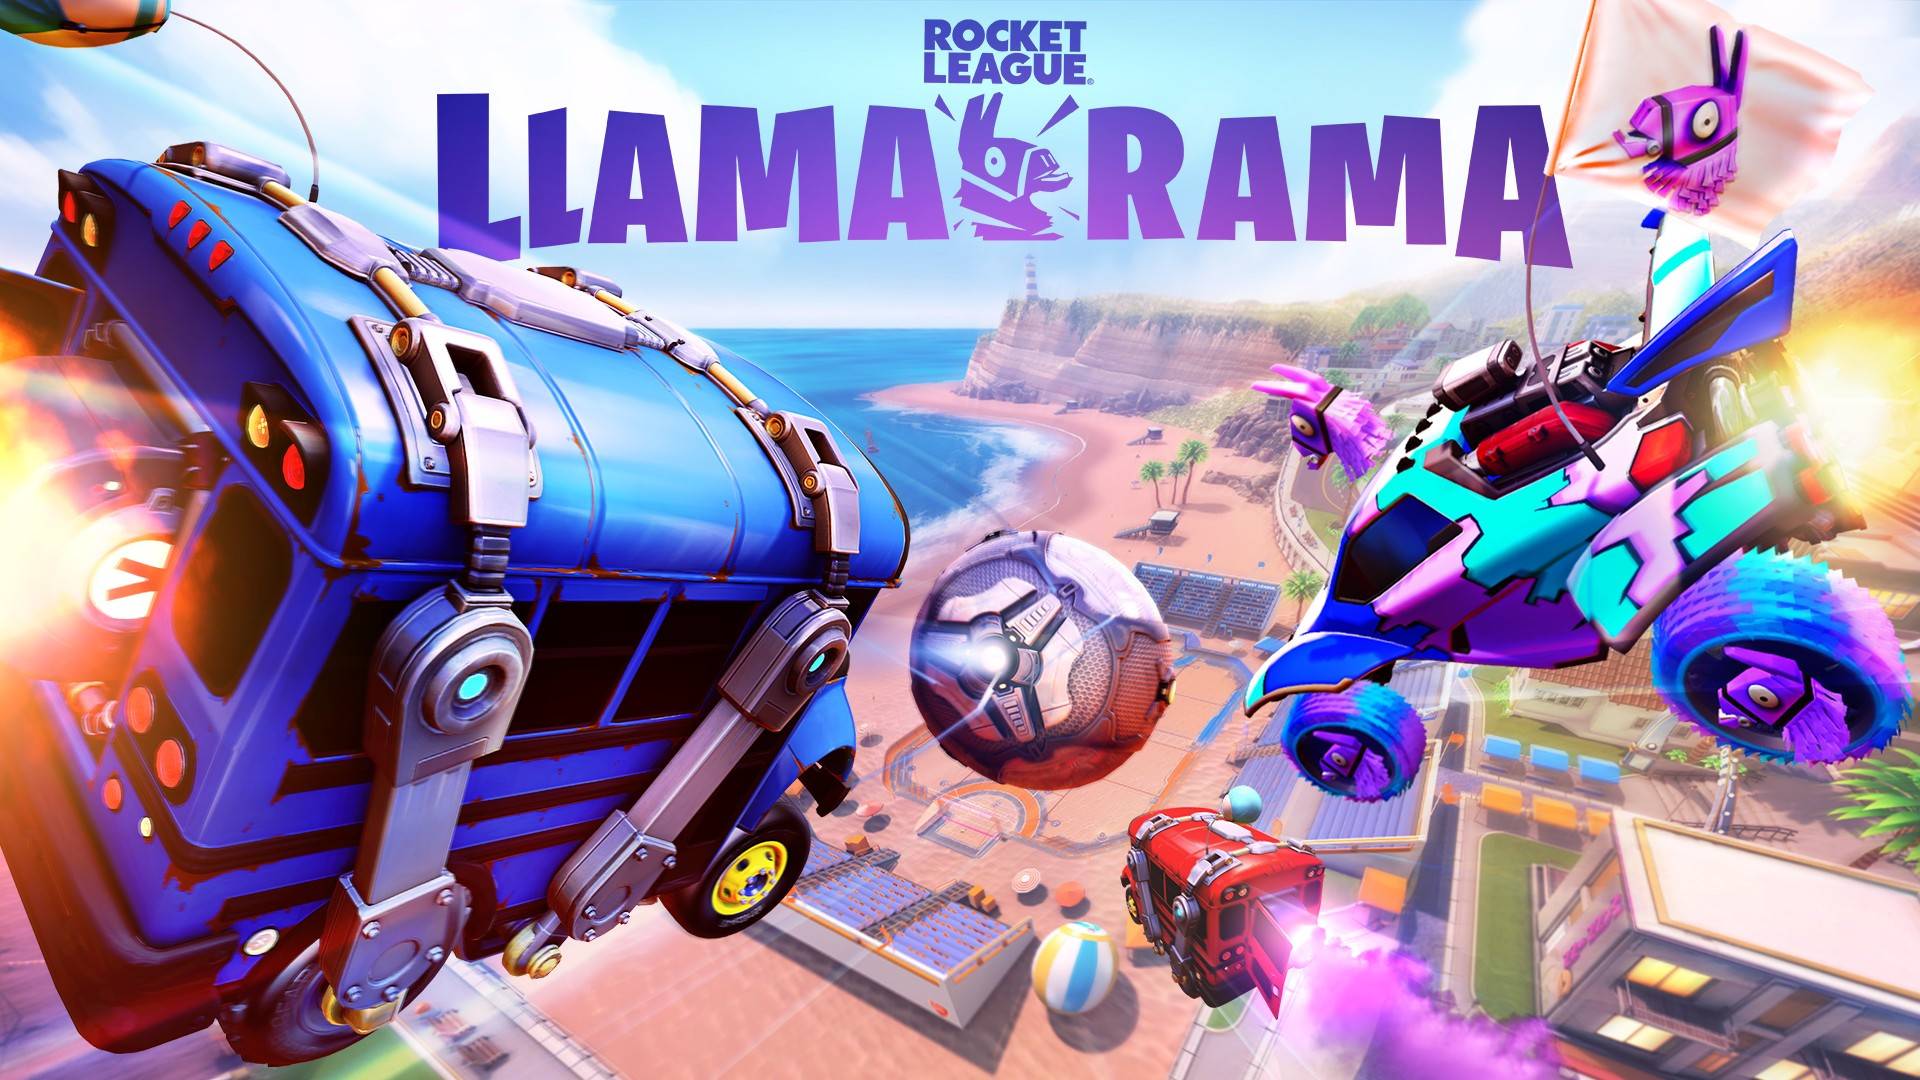 Llama Rama Fortnite Rocket League